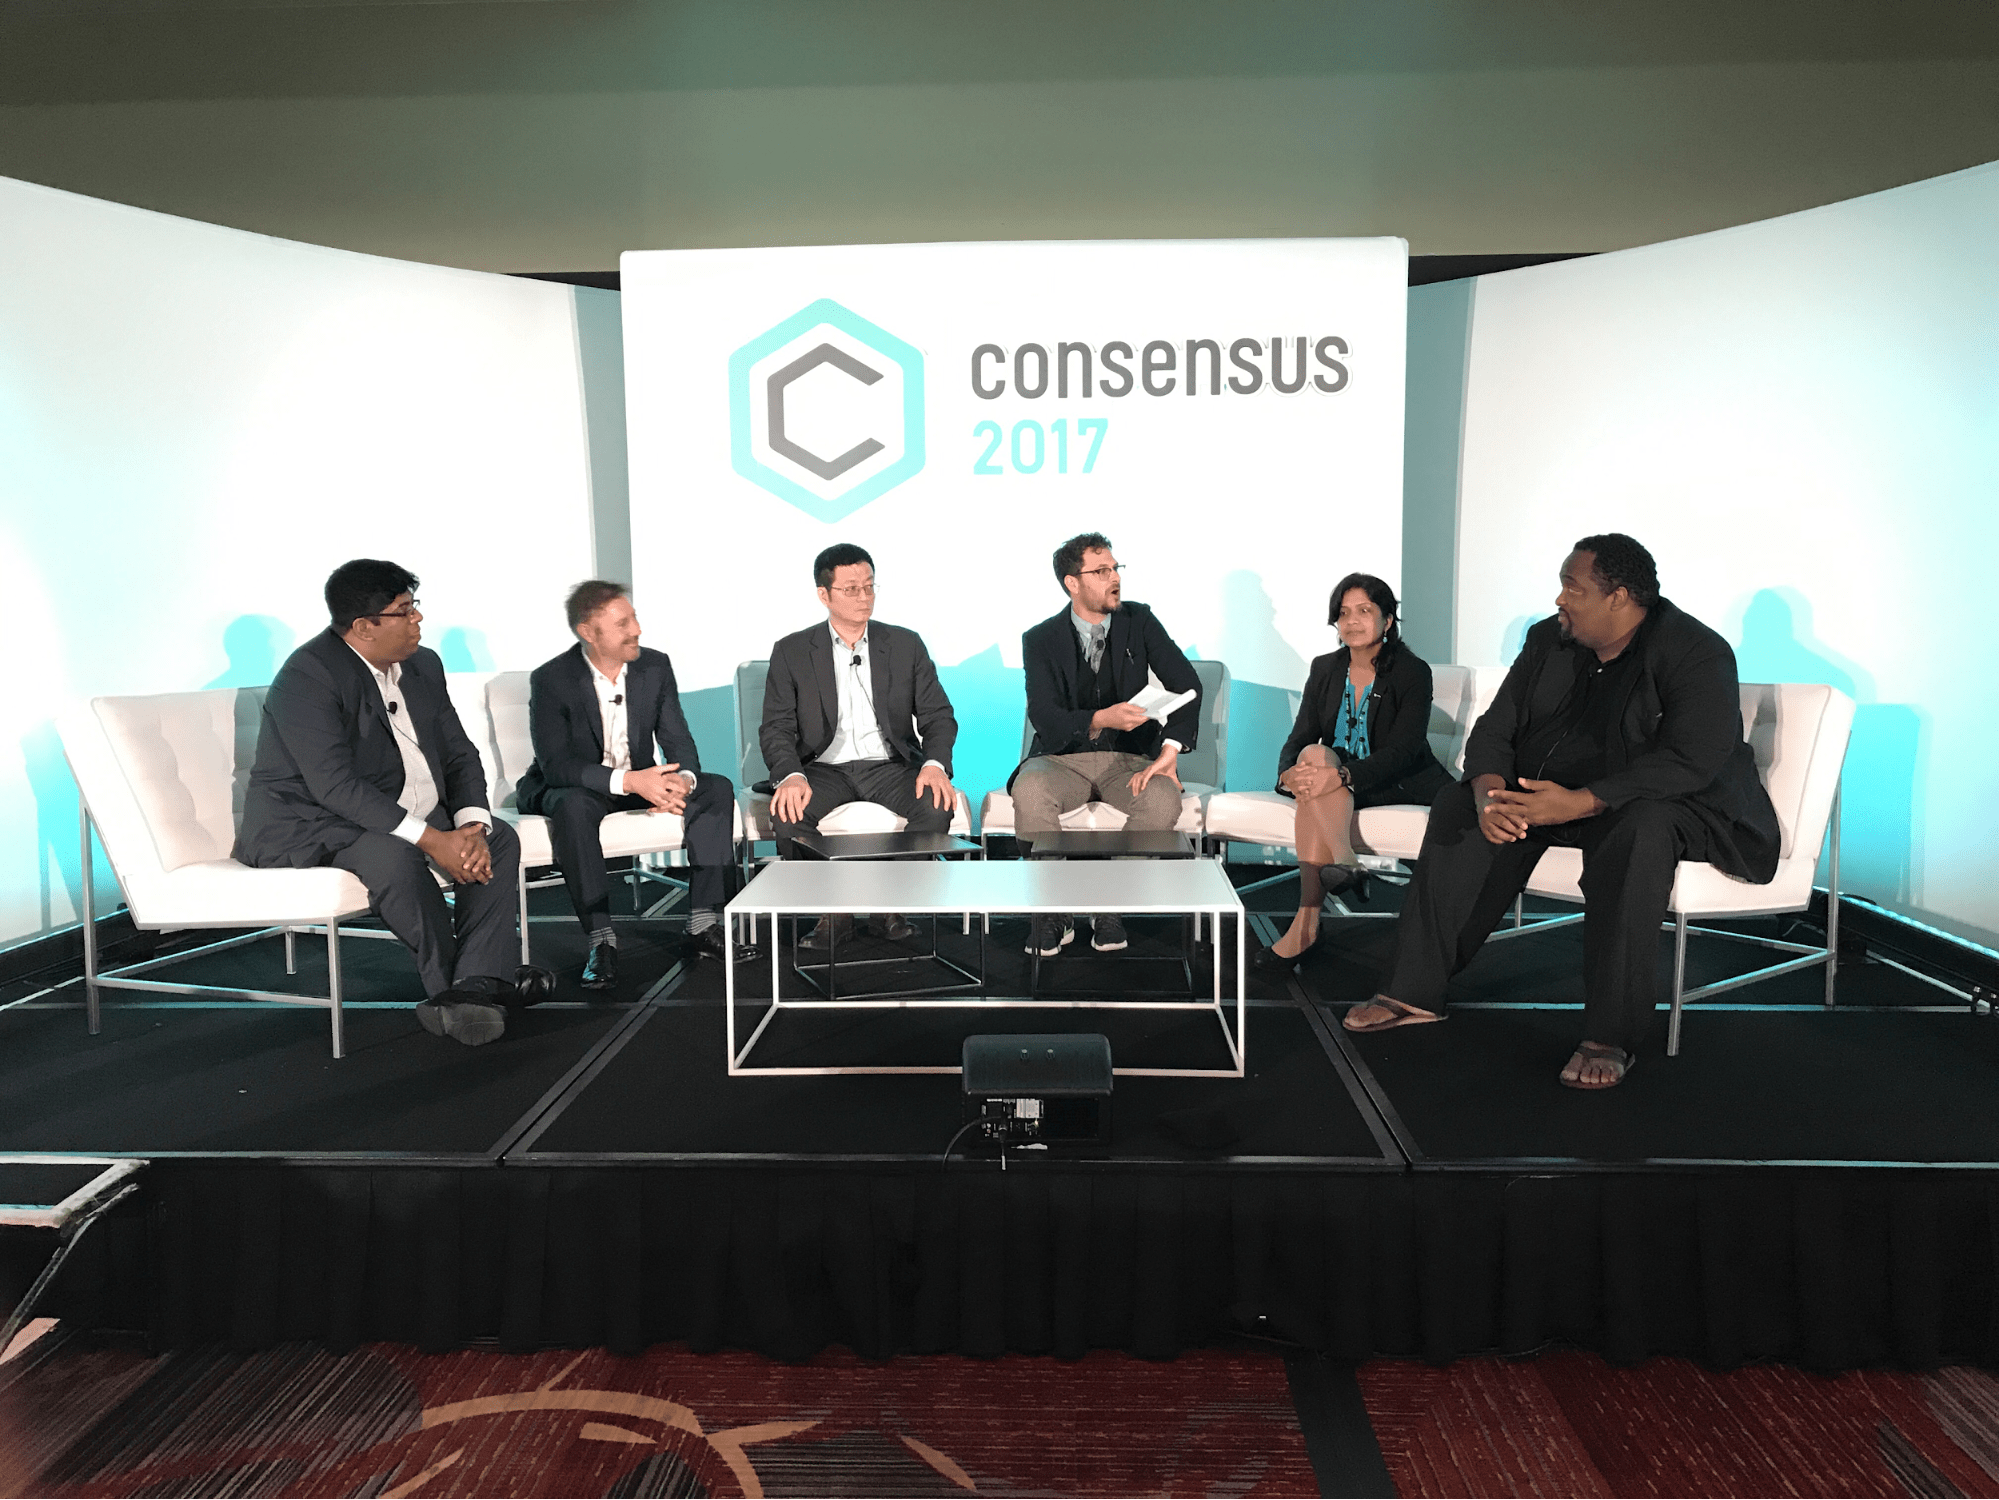 Consensus by CoinDesk - Events That Generate ROI